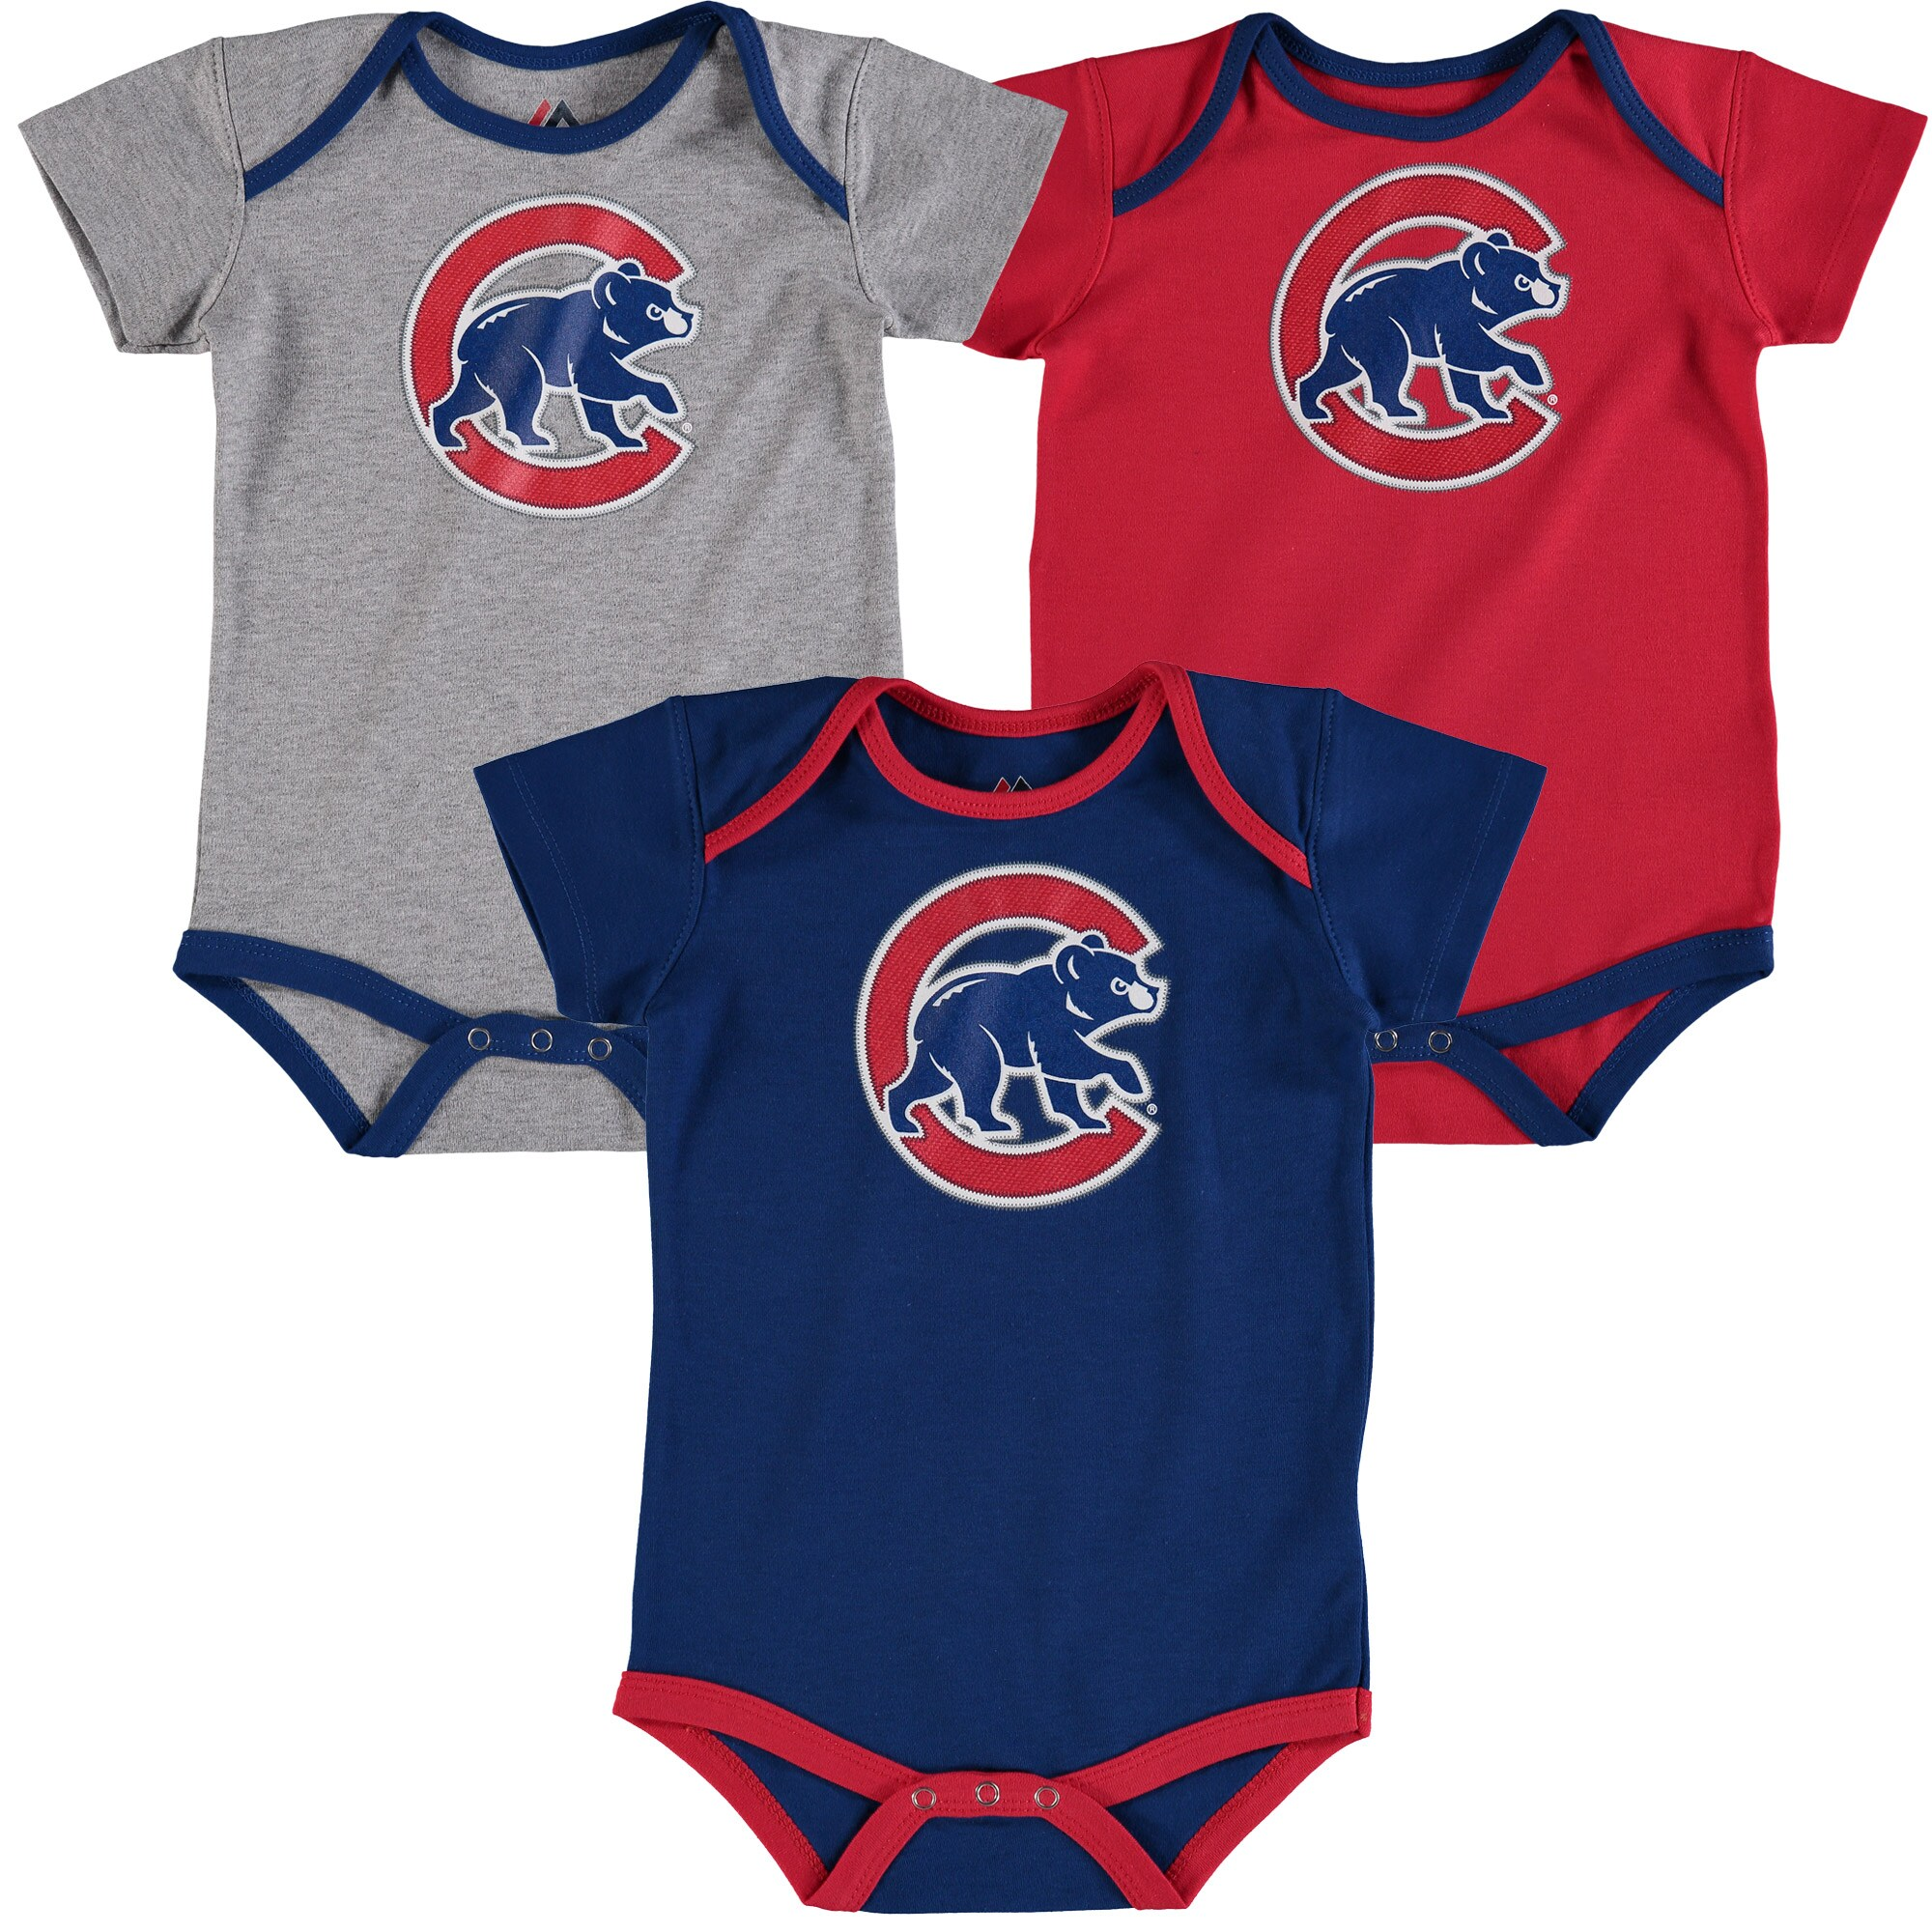 Anthony Rizzo Chicago Cubs Majestic Infant Name & Number 3-Pack Bodysuit Set - Red/Royal/Gray